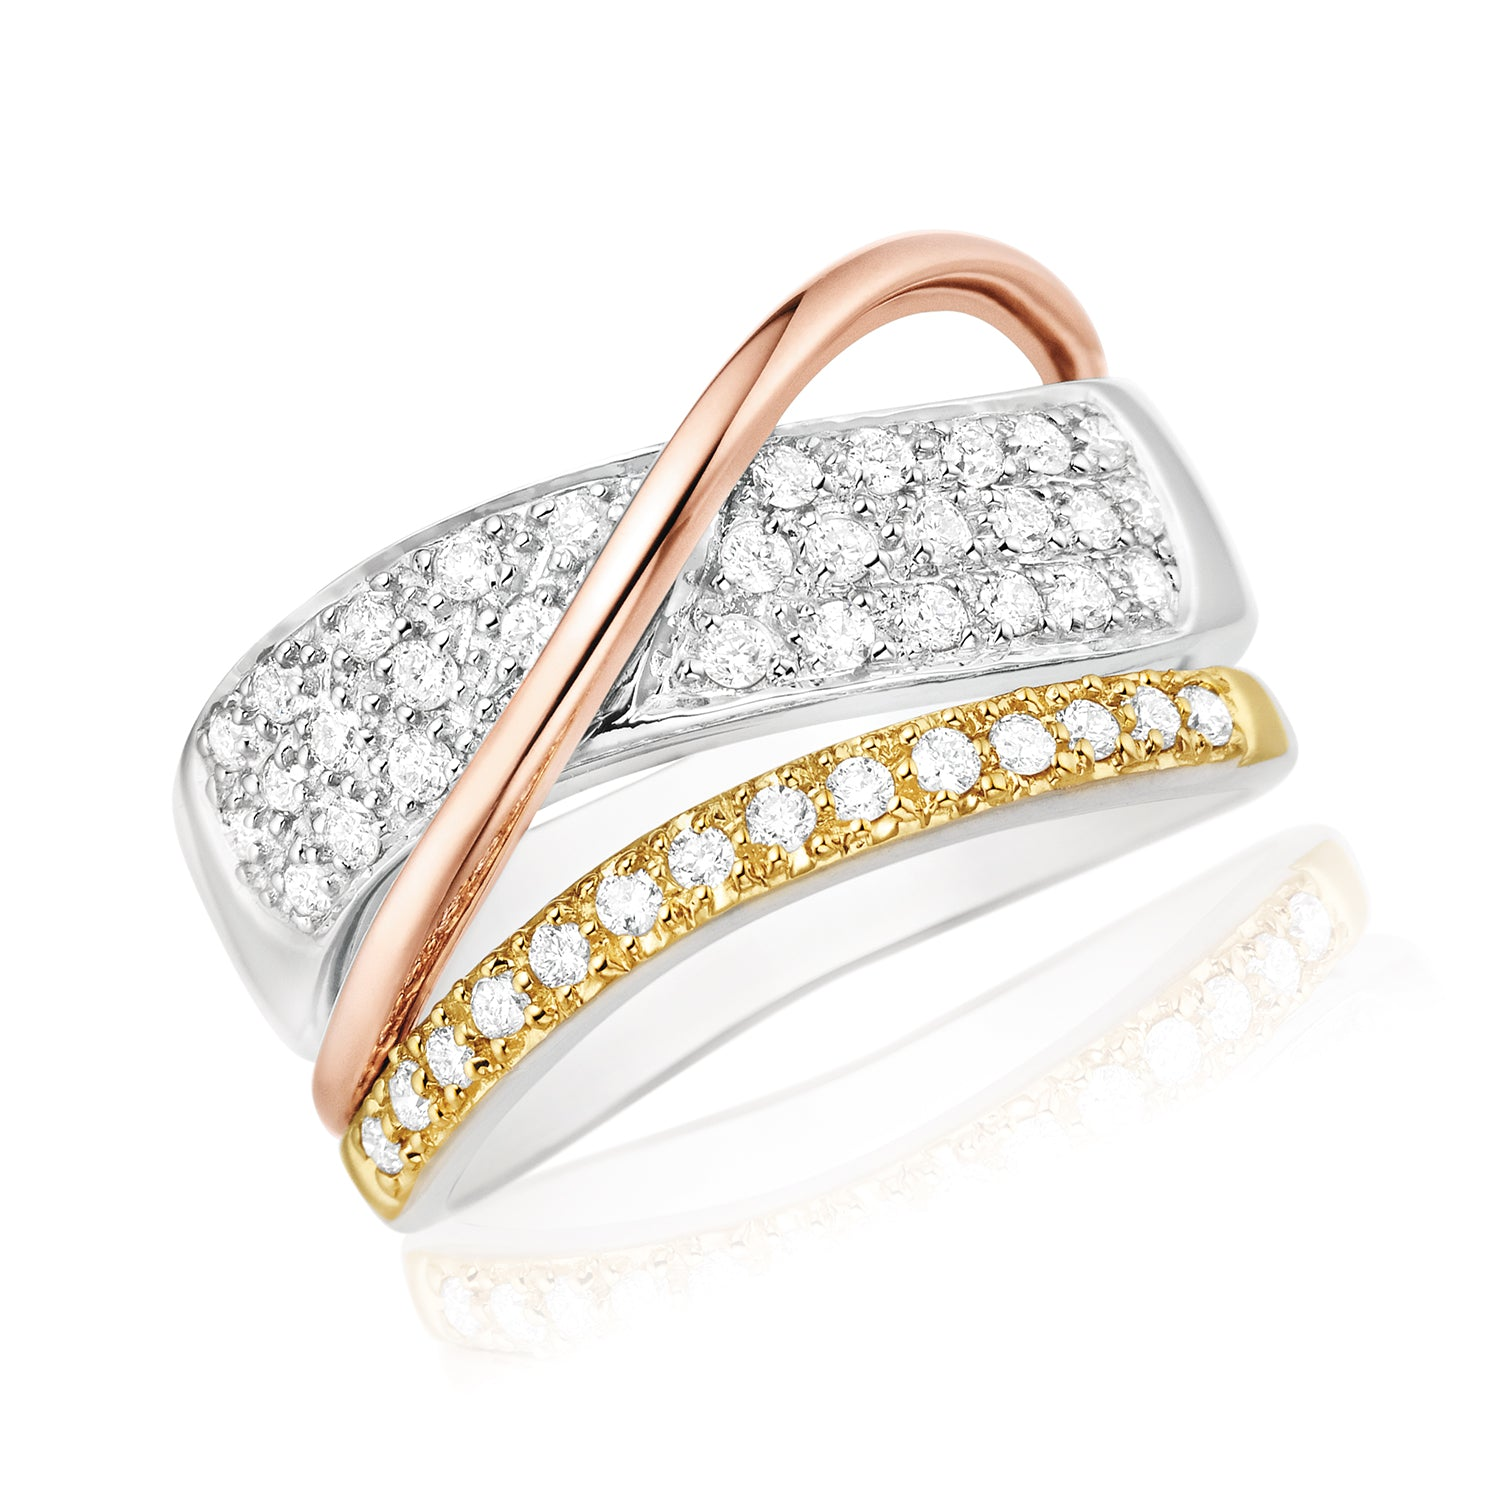 18ct Two Tone Gold Round Brilliant Cut with 0.40 CARAT tw of Diamonds